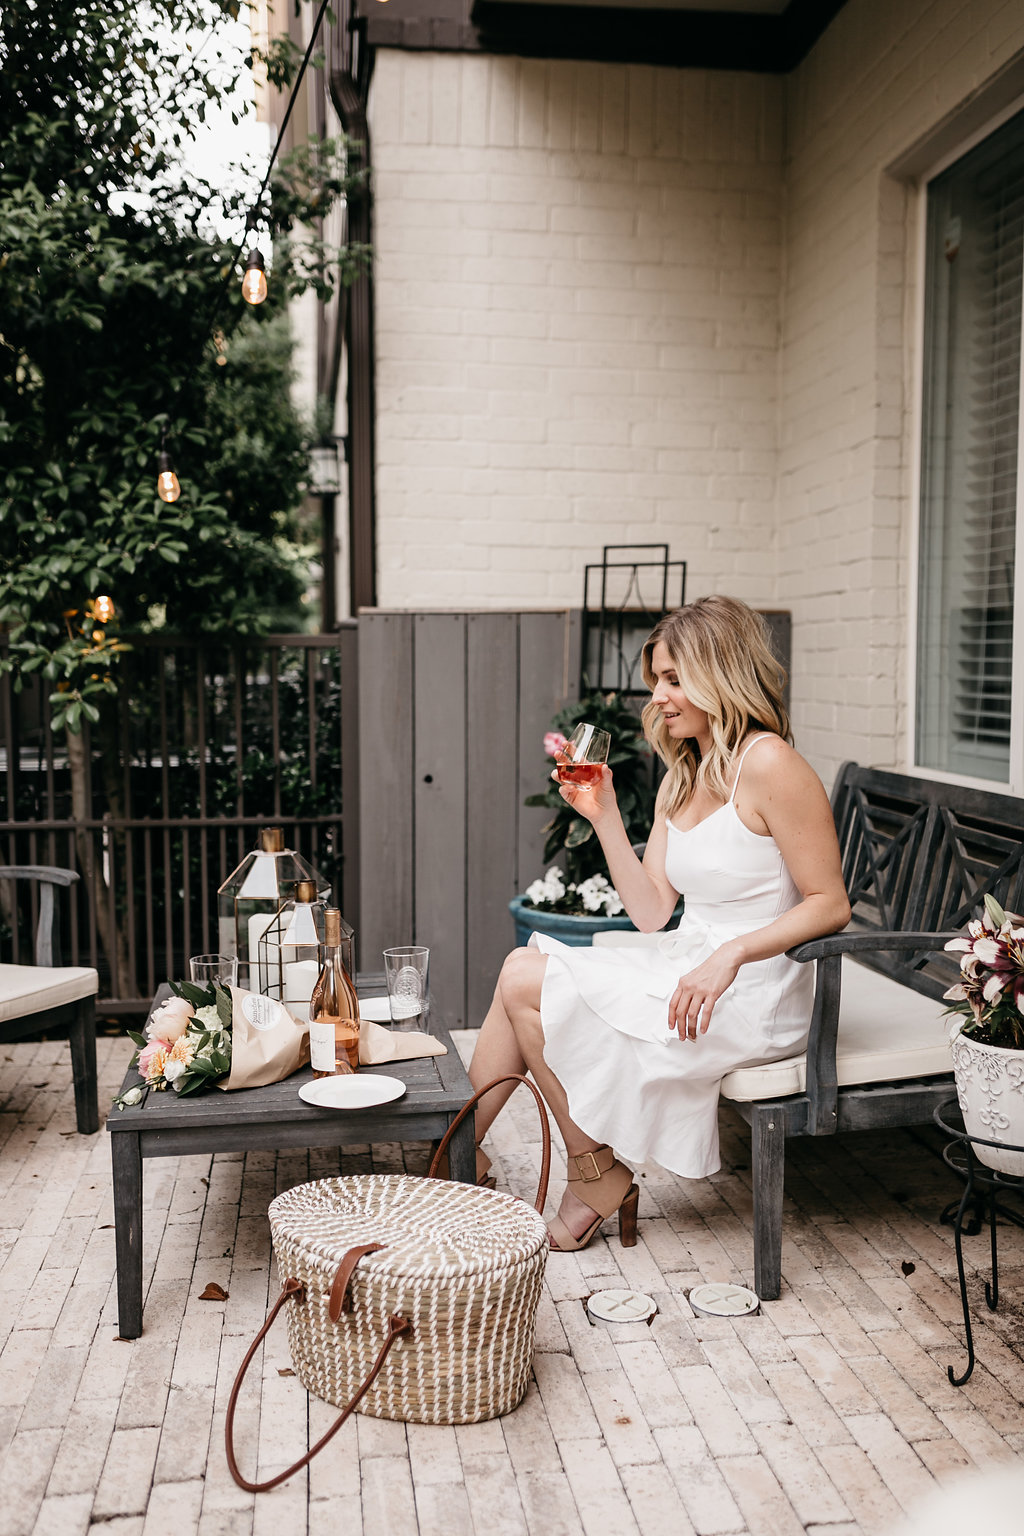 SUMMER DATE NIGHT IDEAS IN DALLAS - One Small Blonde